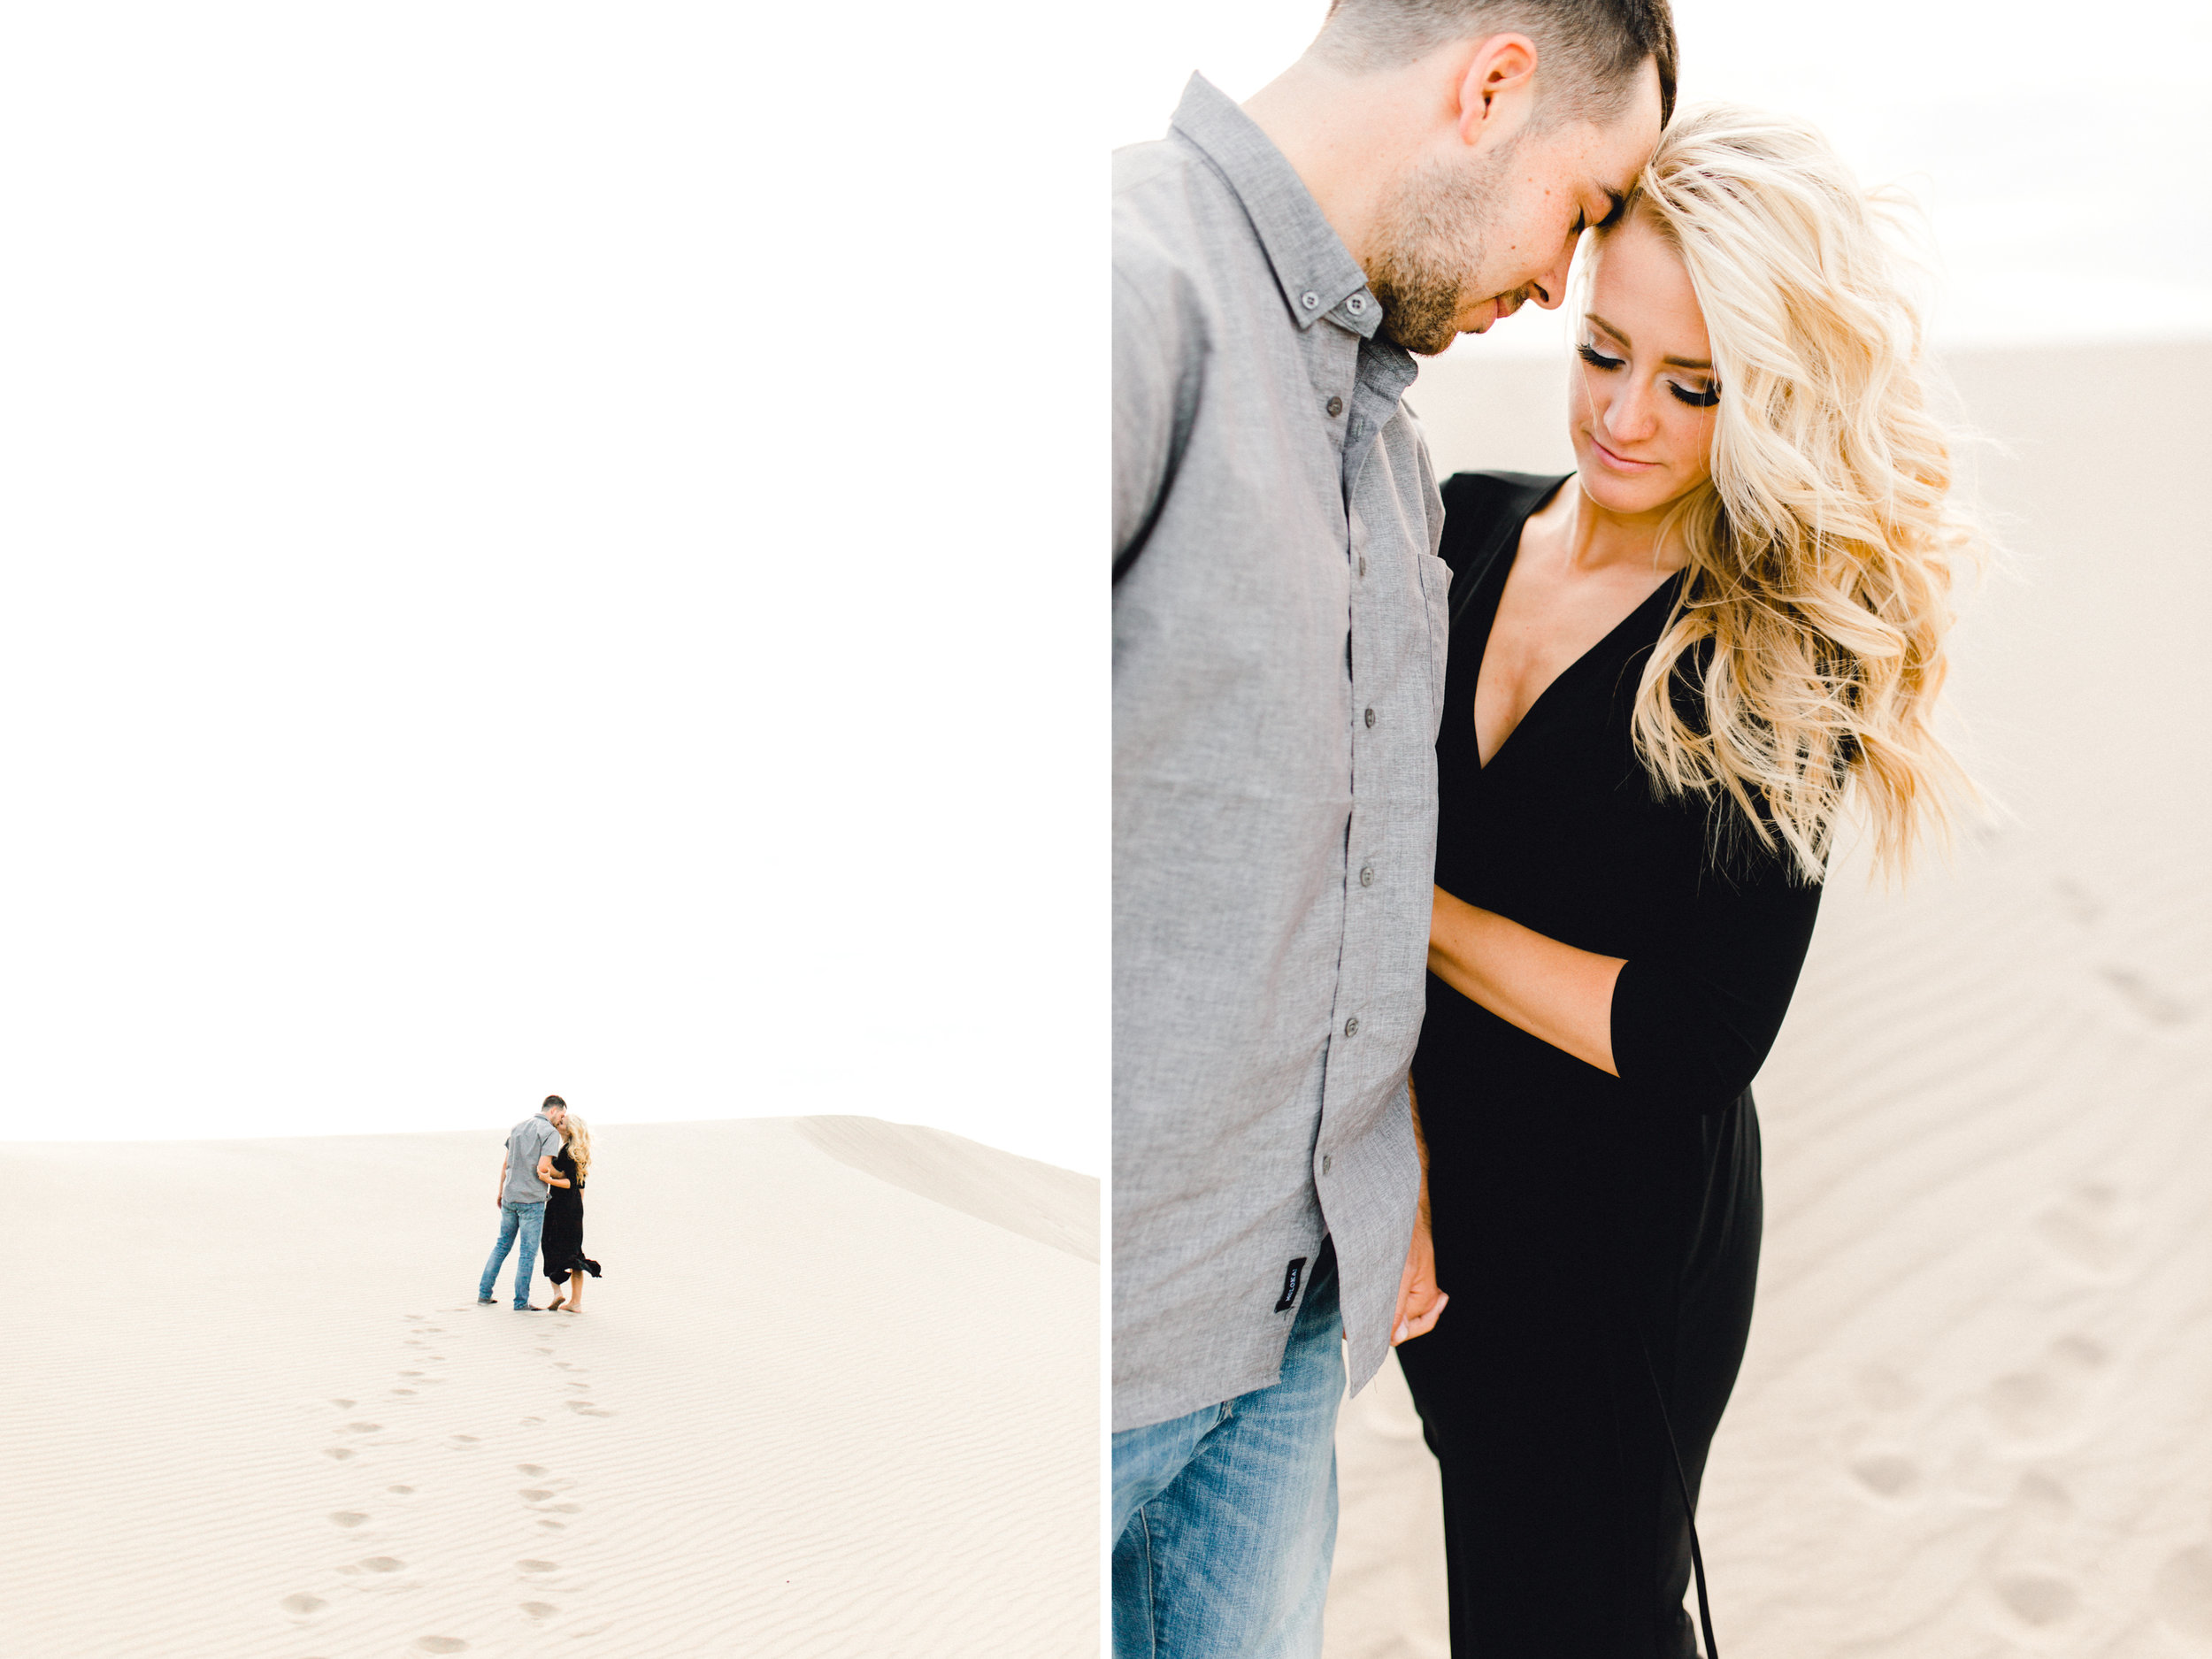 rexburg-idaho-sand-dunes-engagement-photographer-august-trevor.jpg